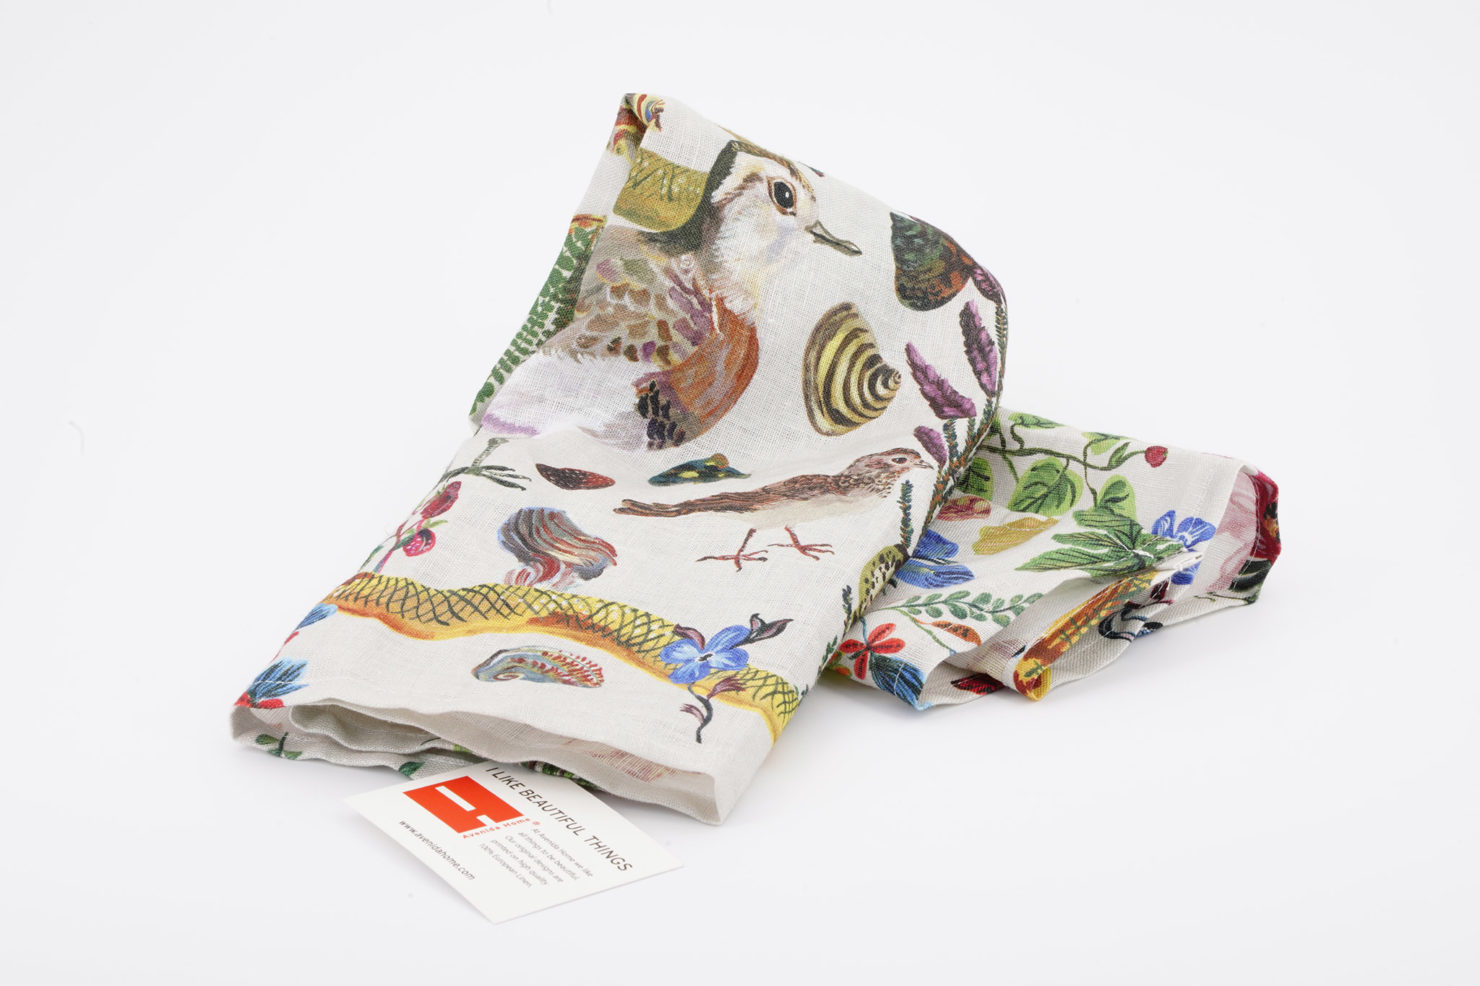 BIRDS IN THE DUNES KITCHEN AND TABLE LINENS BY NATHALIE LETE 70X50 AVENIDA HOME